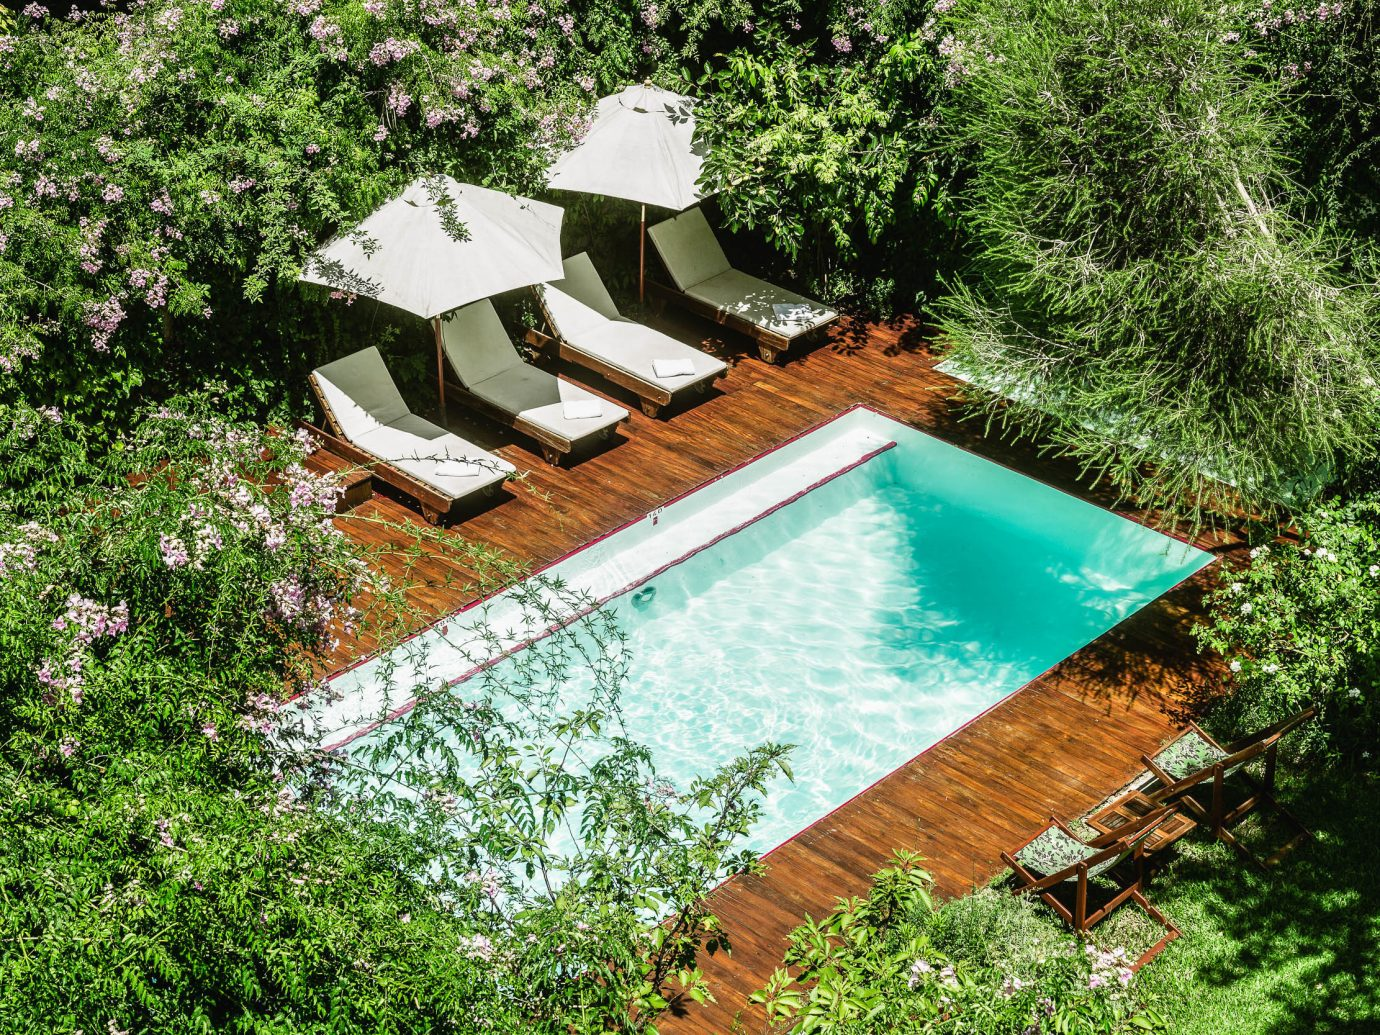 Boutique Hotels Luxury Travel Trip Ideas tree outdoor property swimming pool plant house backyard water outdoor structure real estate leisure estate yard landscaping Garden cottage grass roof landscape